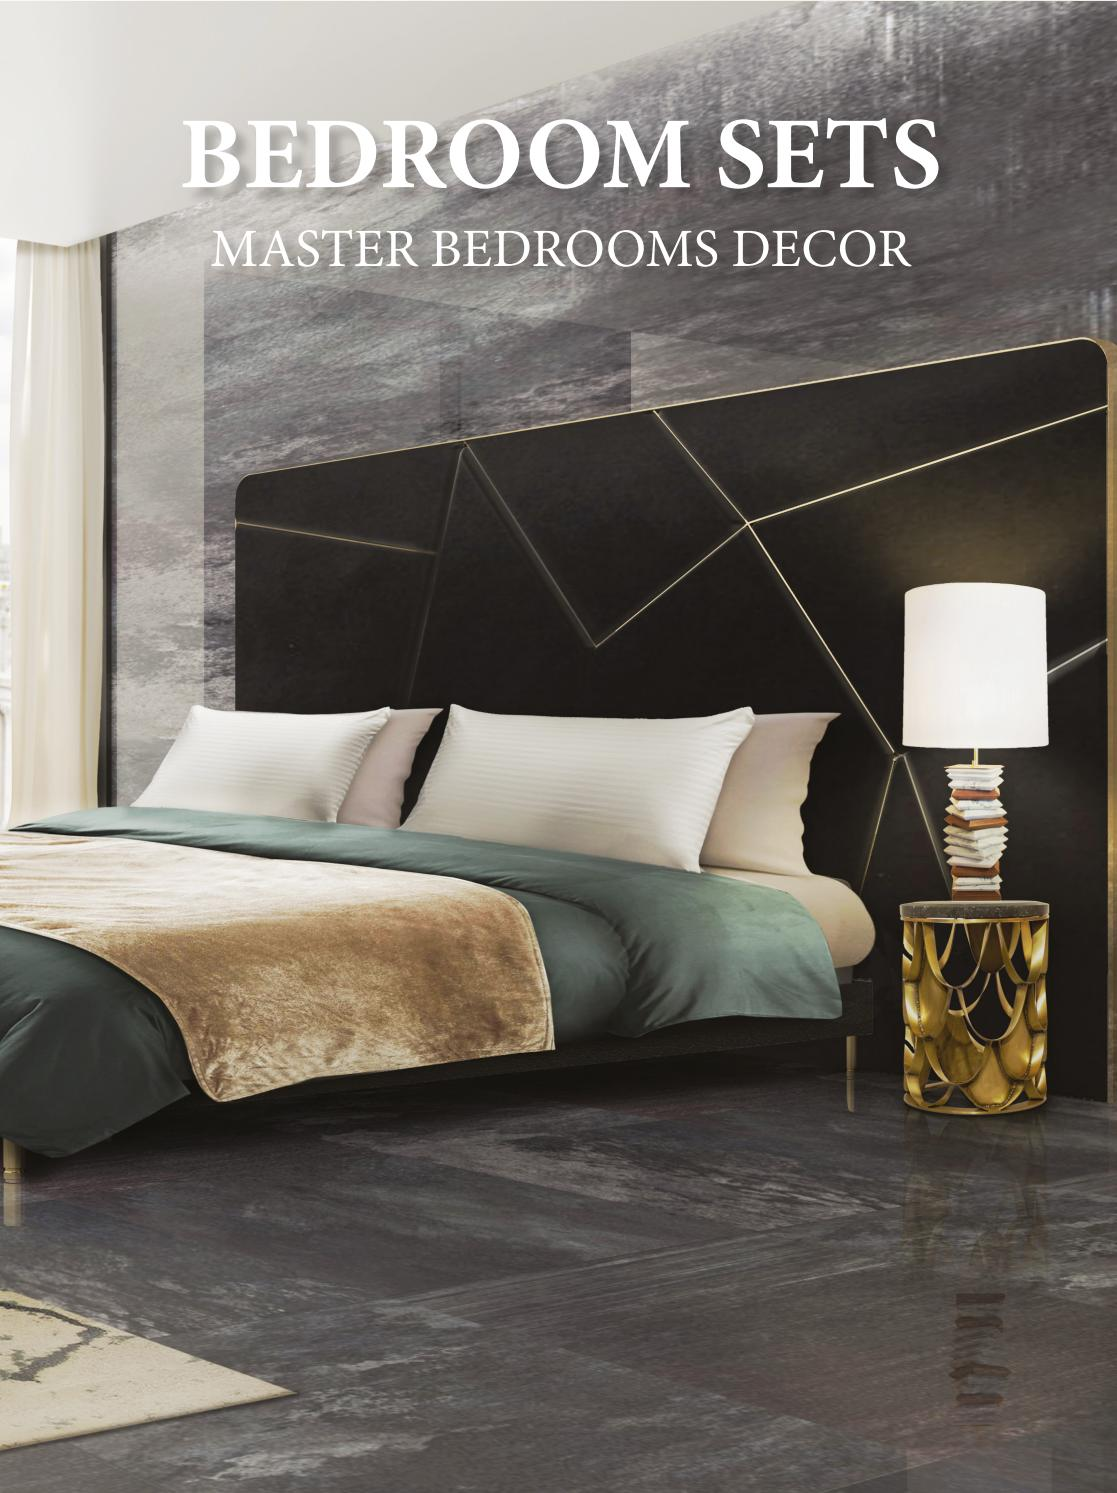 Bedrooms Sets  Master Bedrooms Decor by HOME & LIVING MAGAZINES